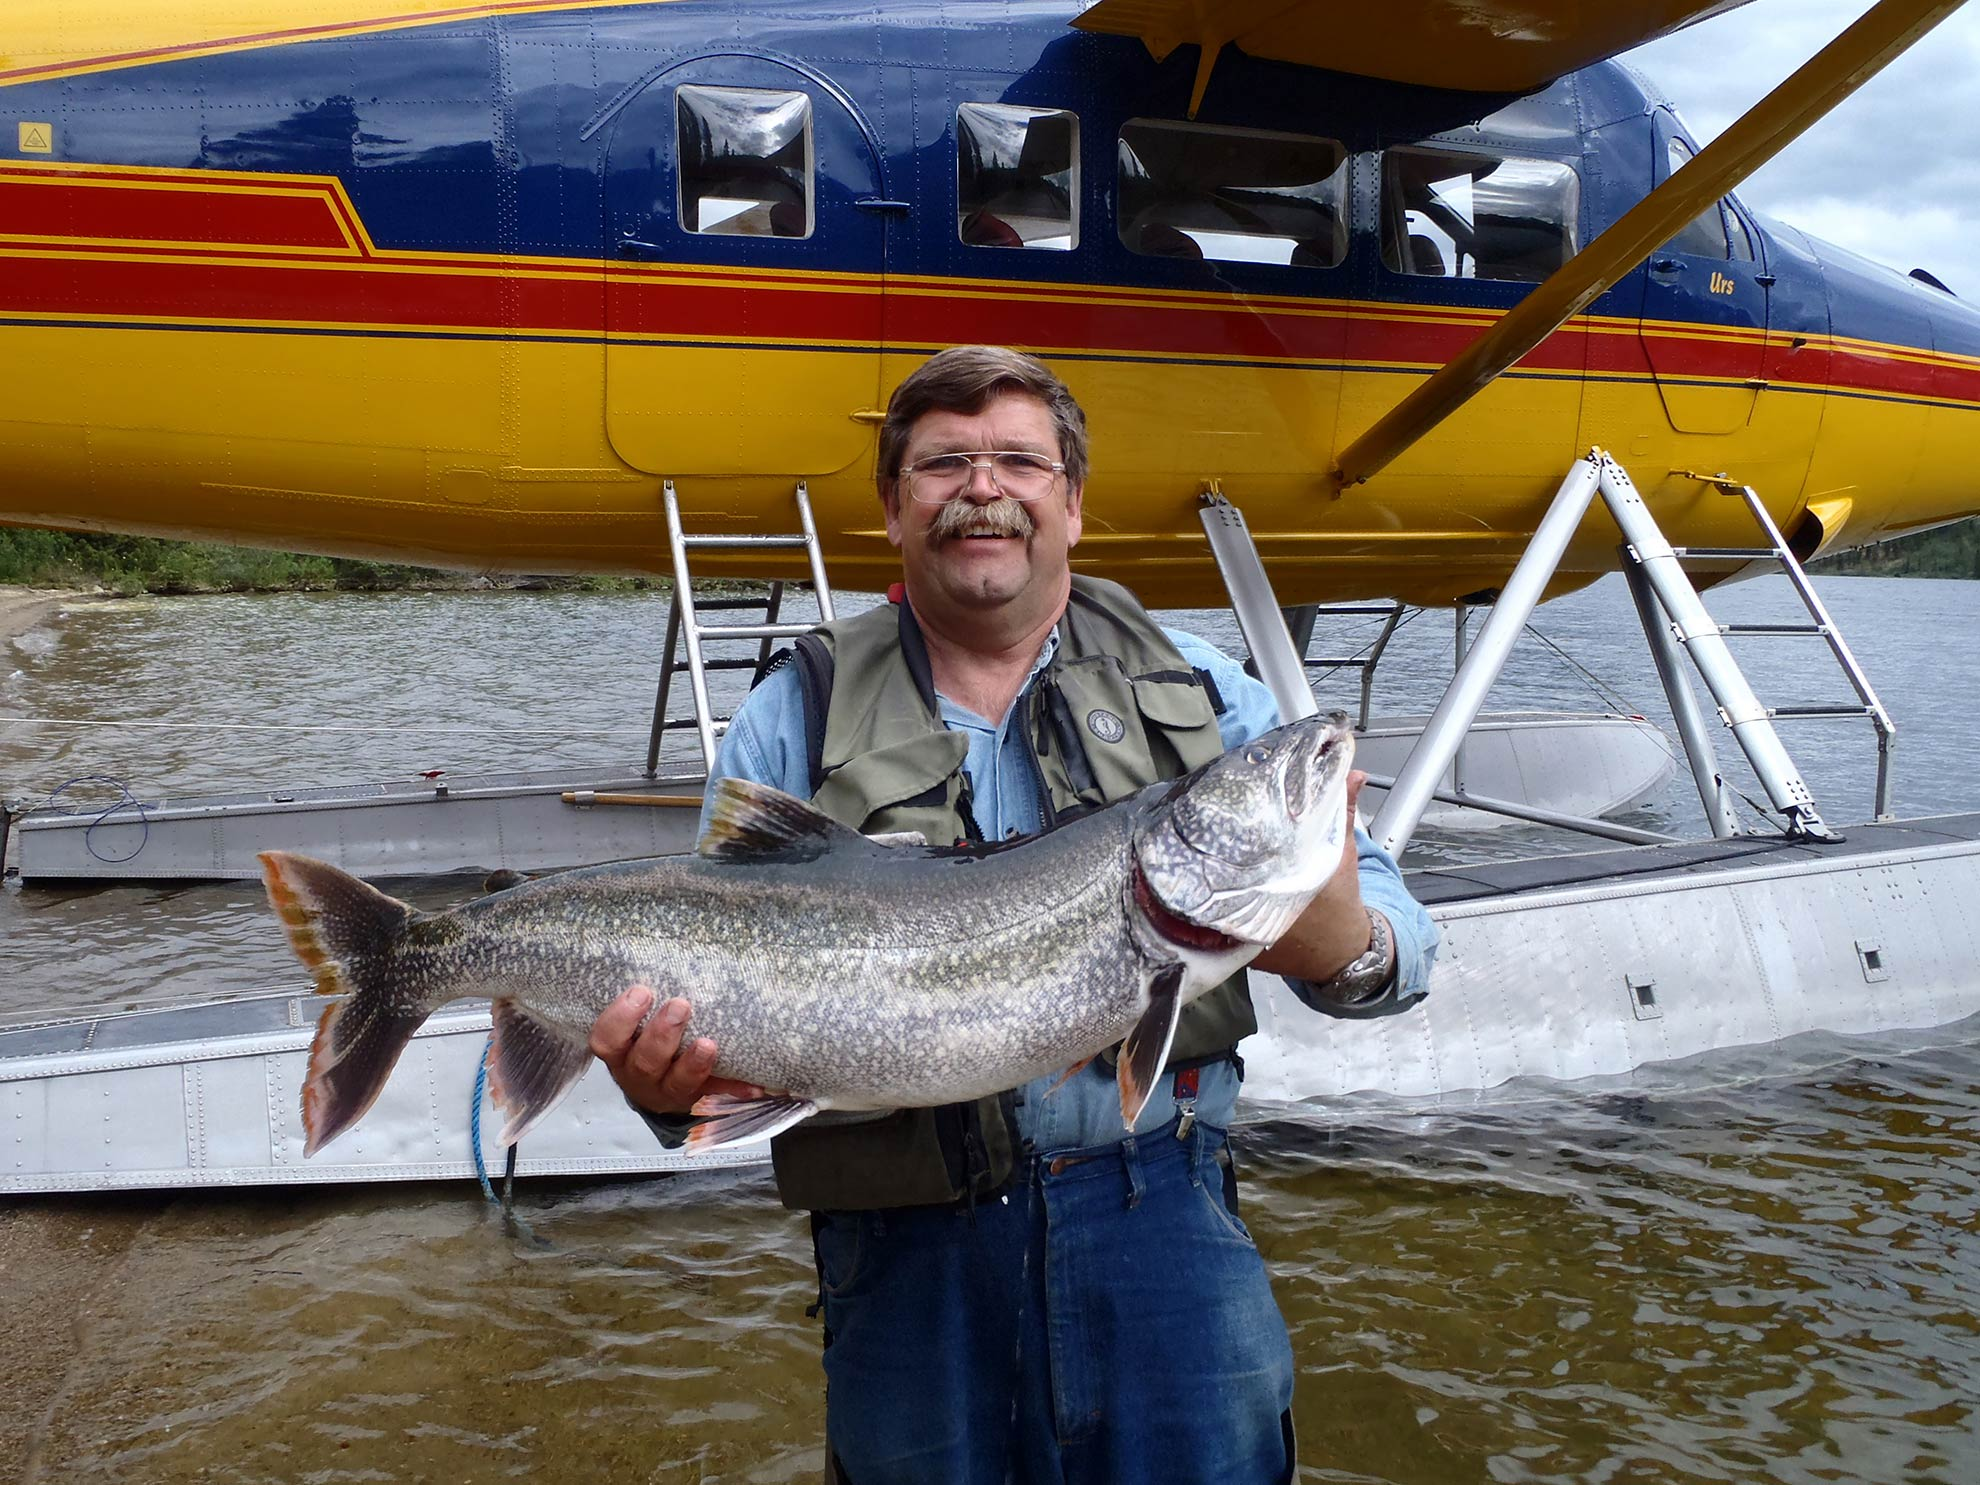 Bushpilot Urs, delighting with a days fishing